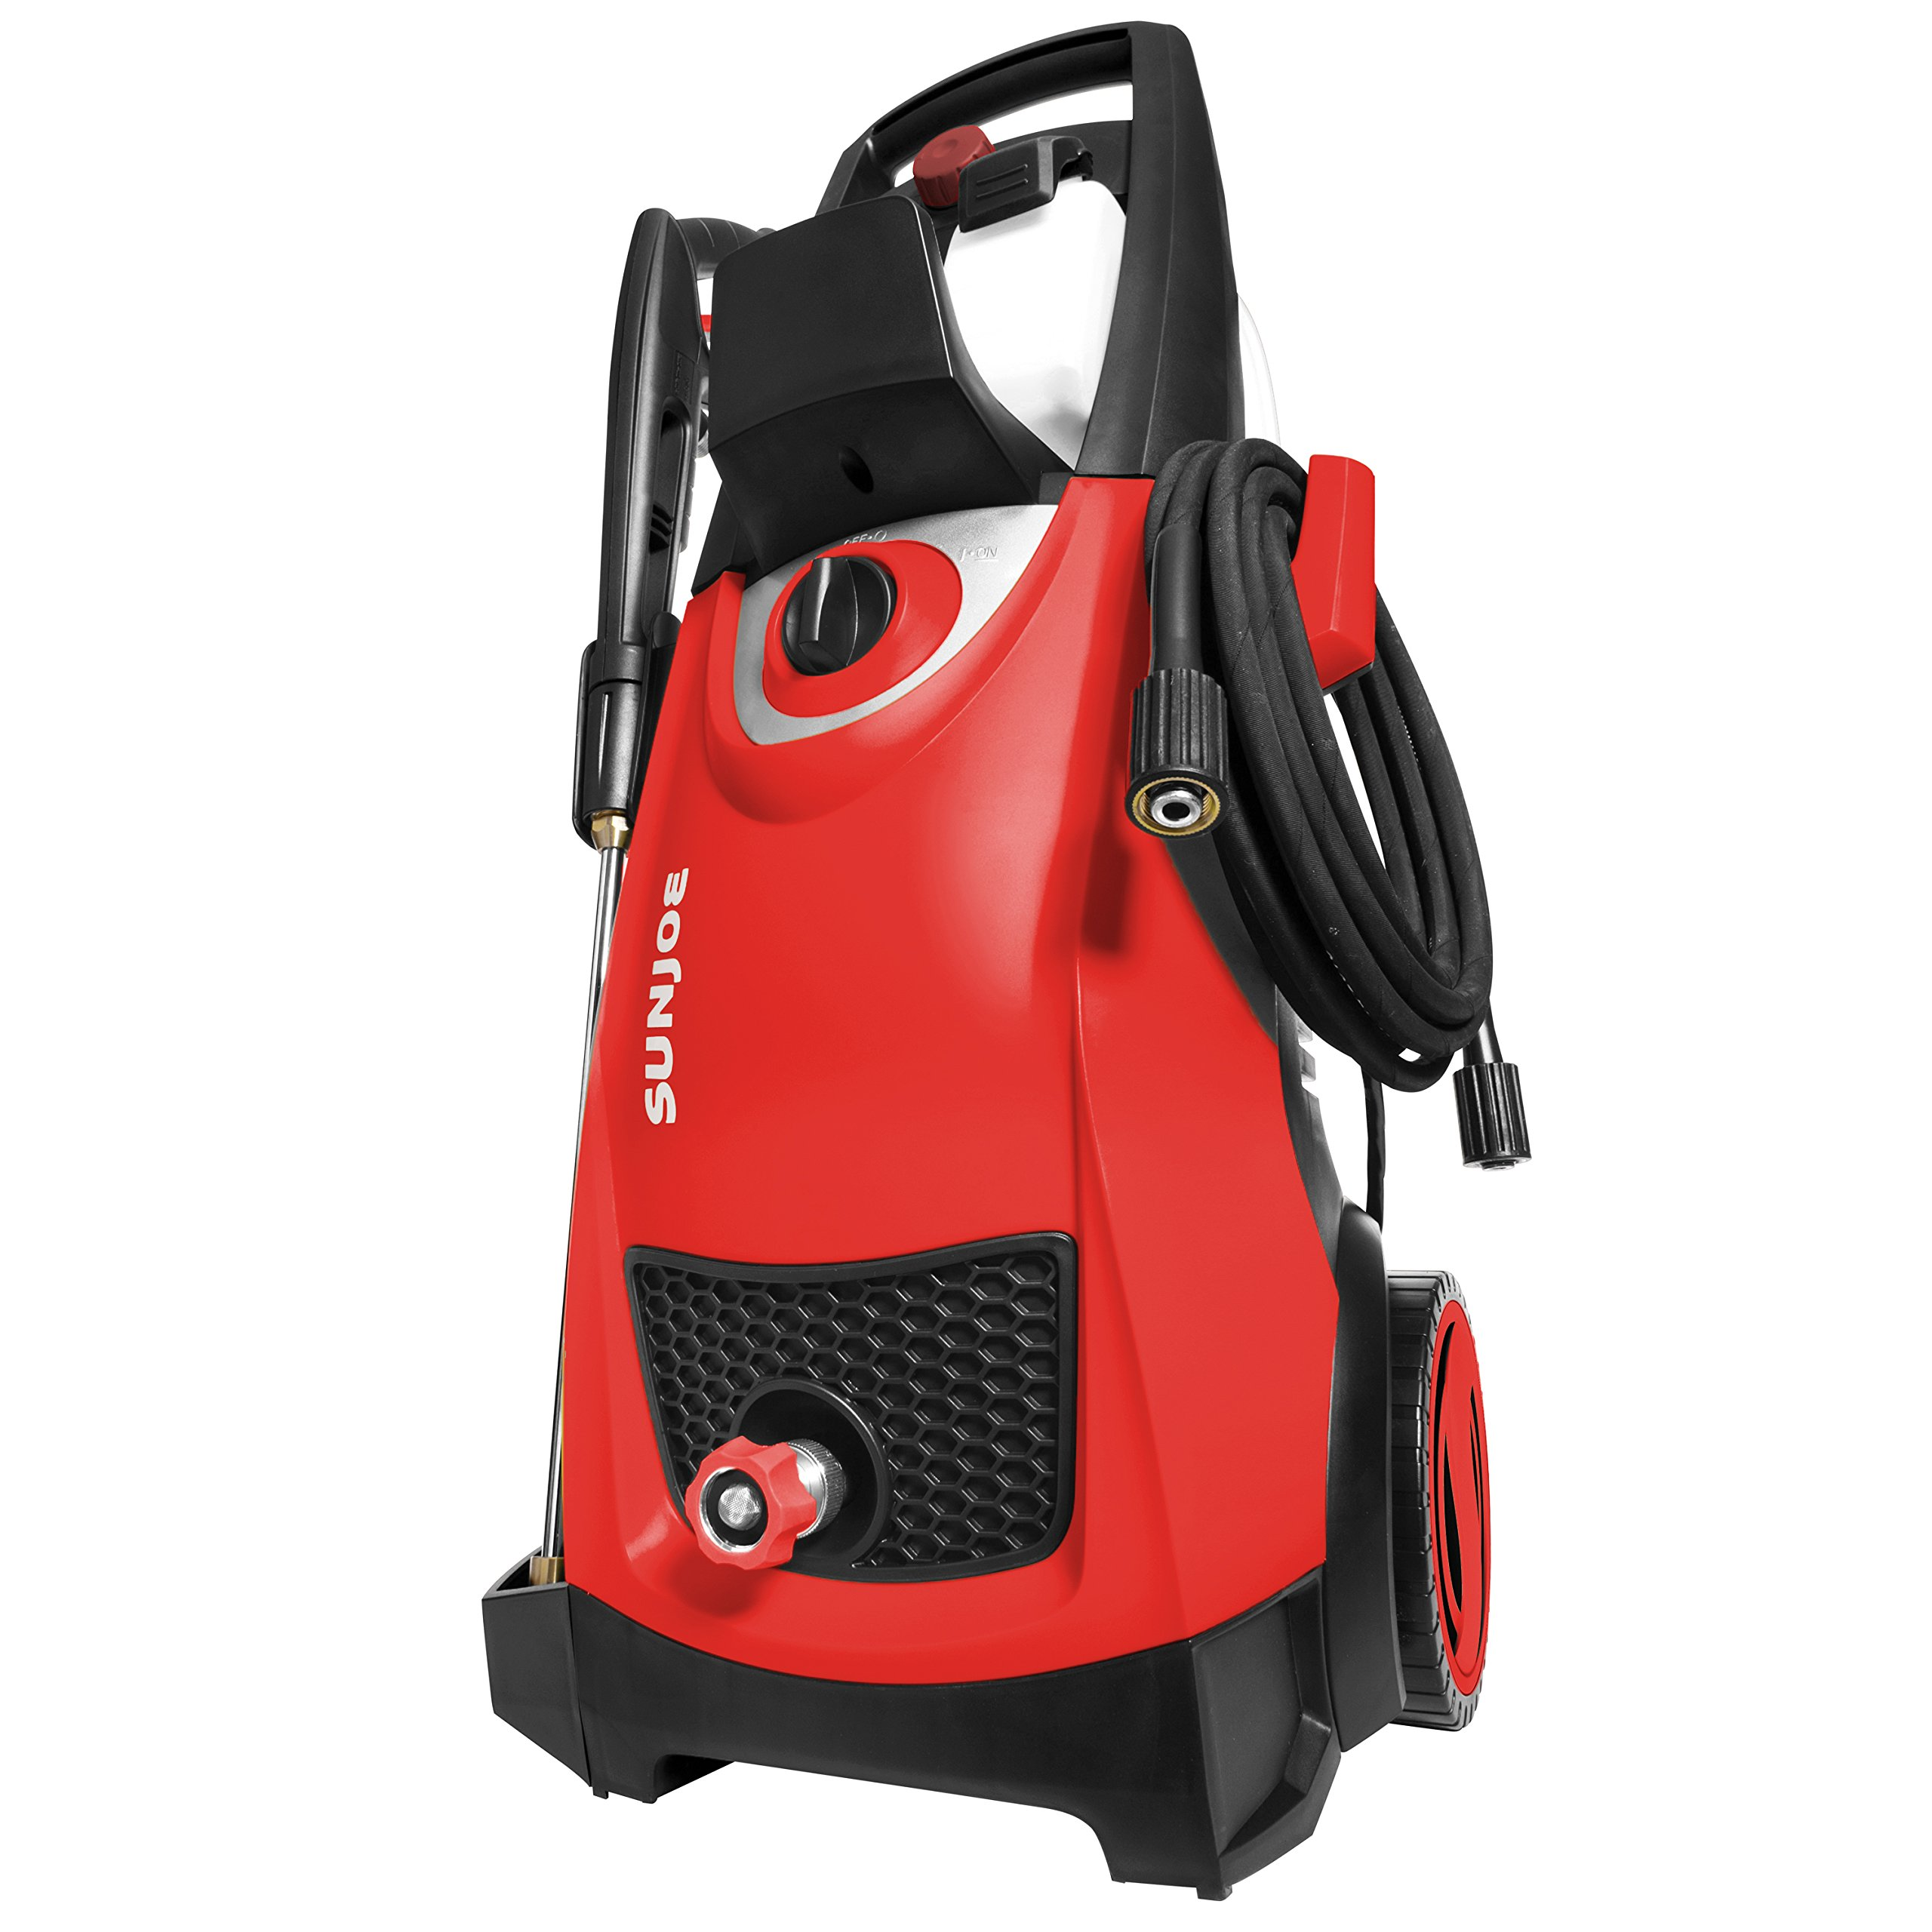 Sun Joe SPX3000-RED Pressure Joe 2030 PSI 1.76 GPM 14.5-Amp Electric Pressure Washer, Red by Sun Joe